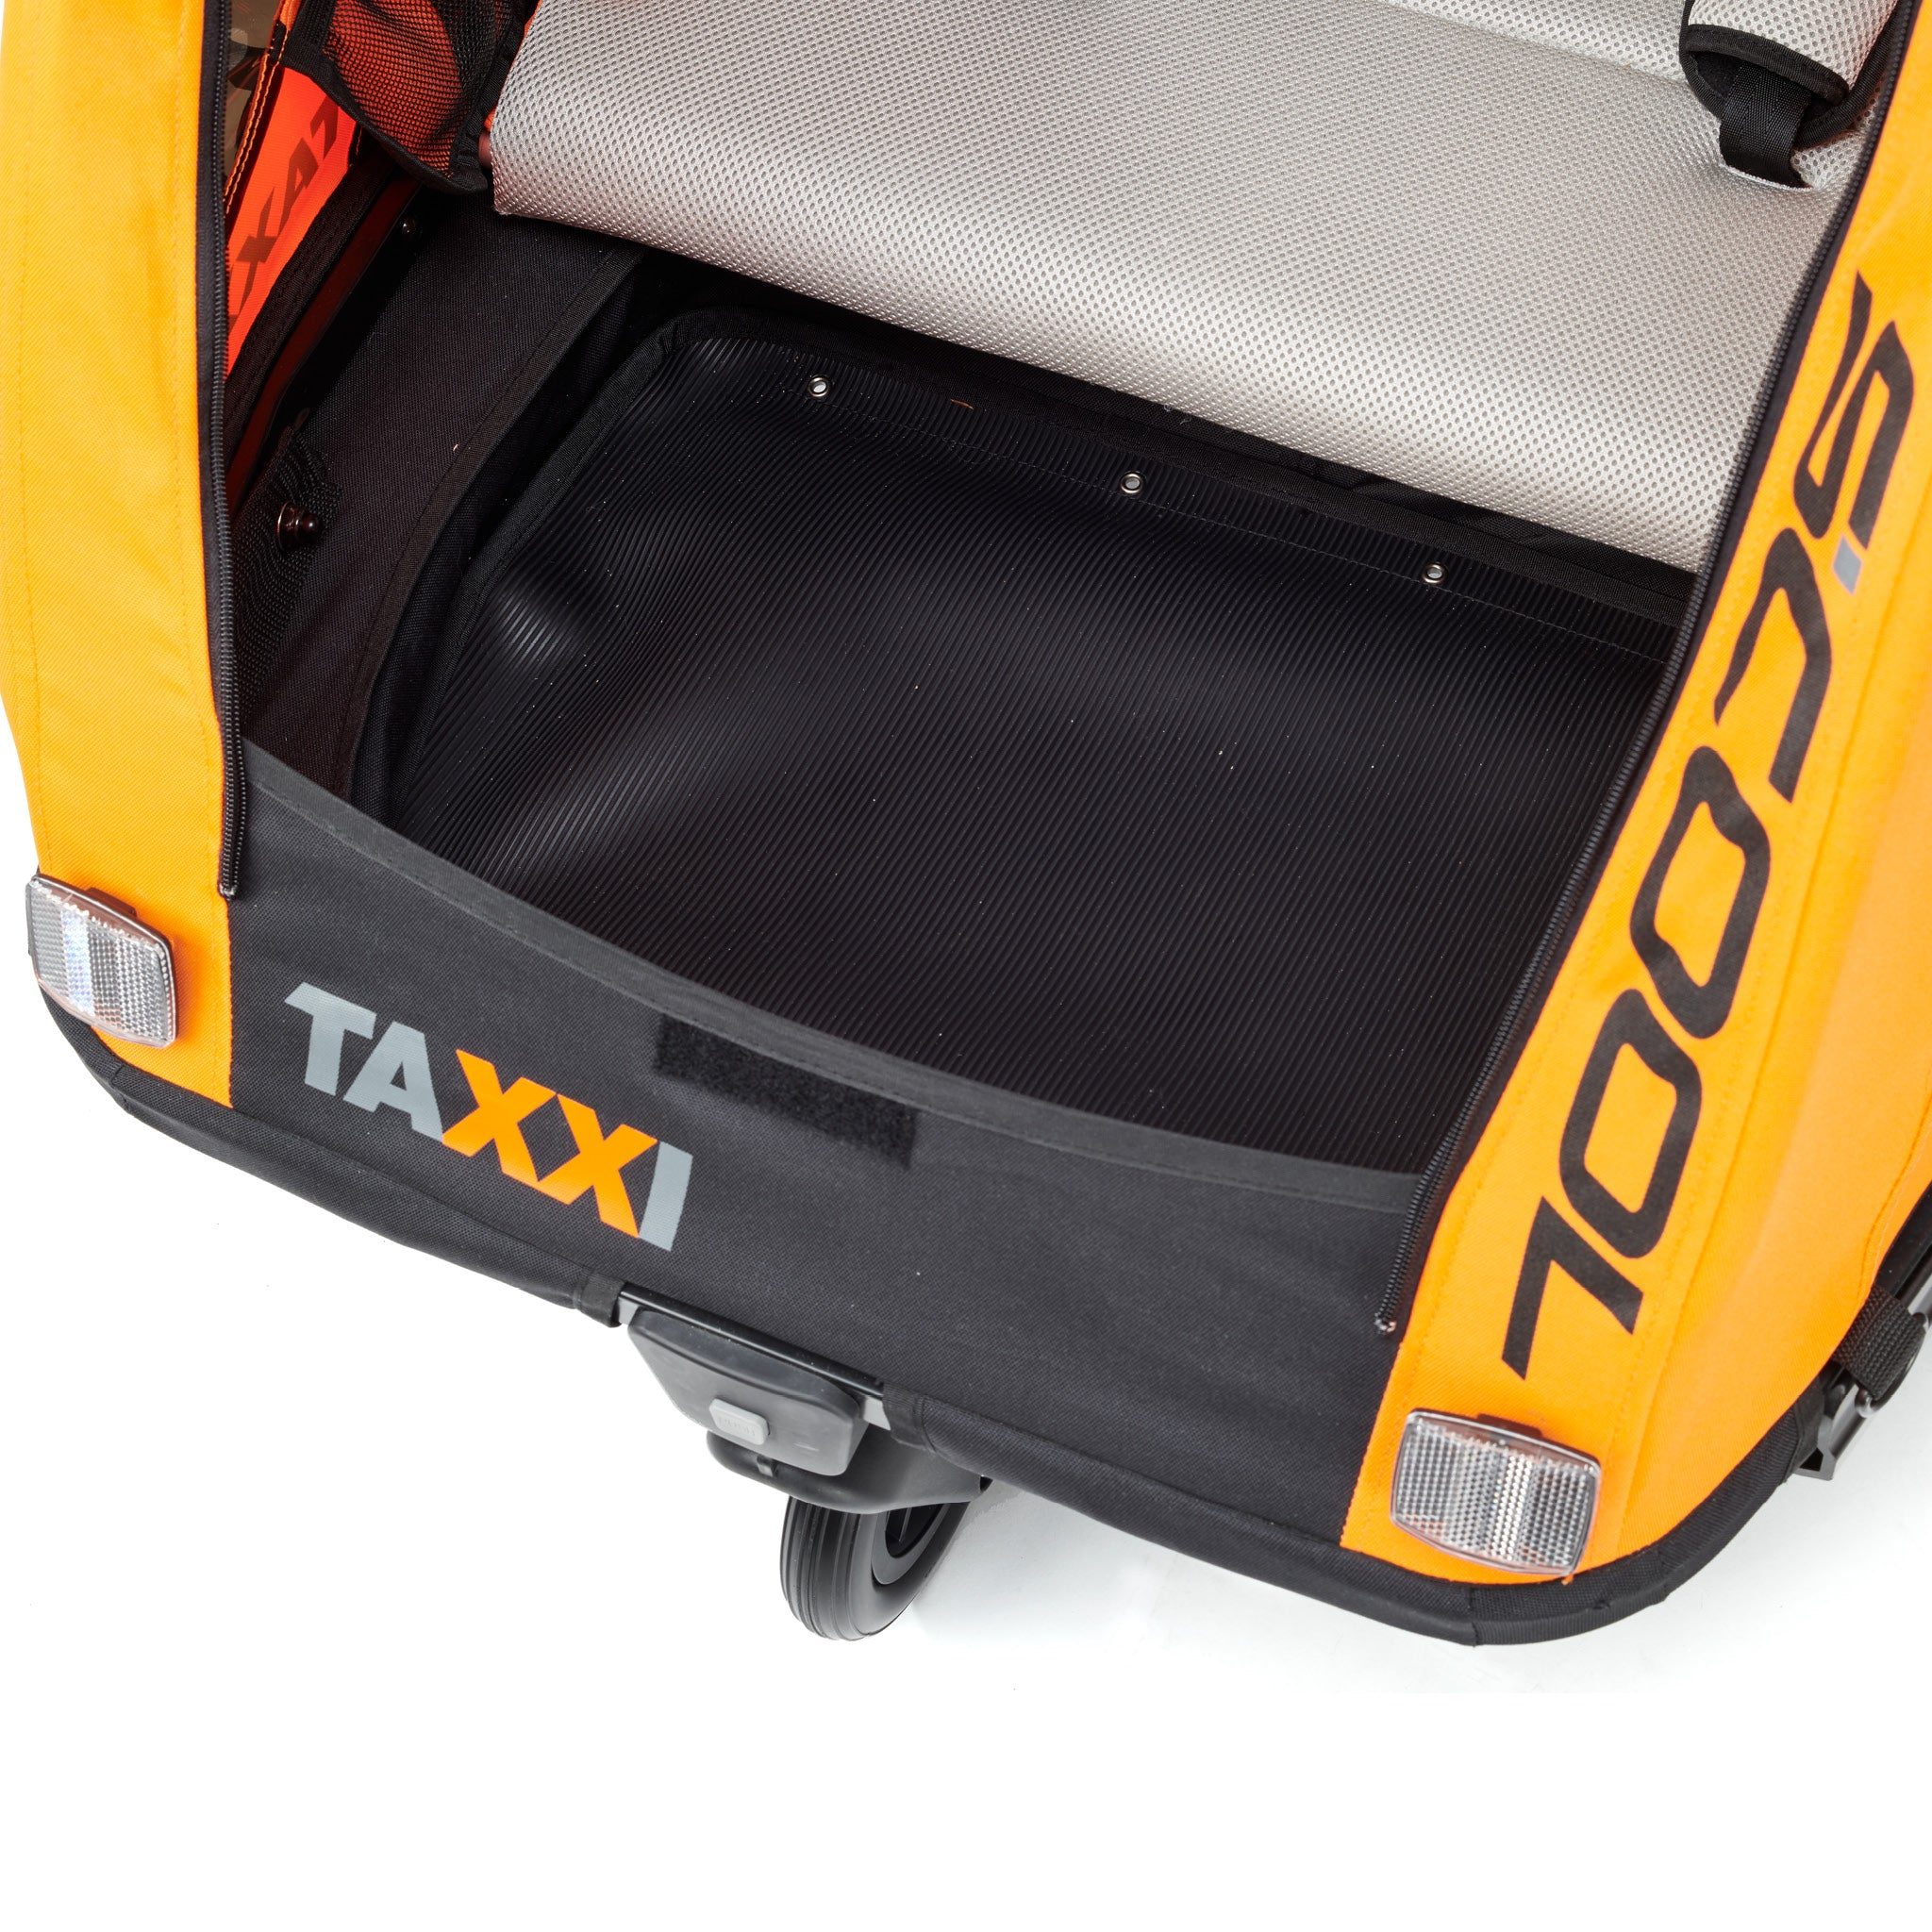 taXXi Pro two